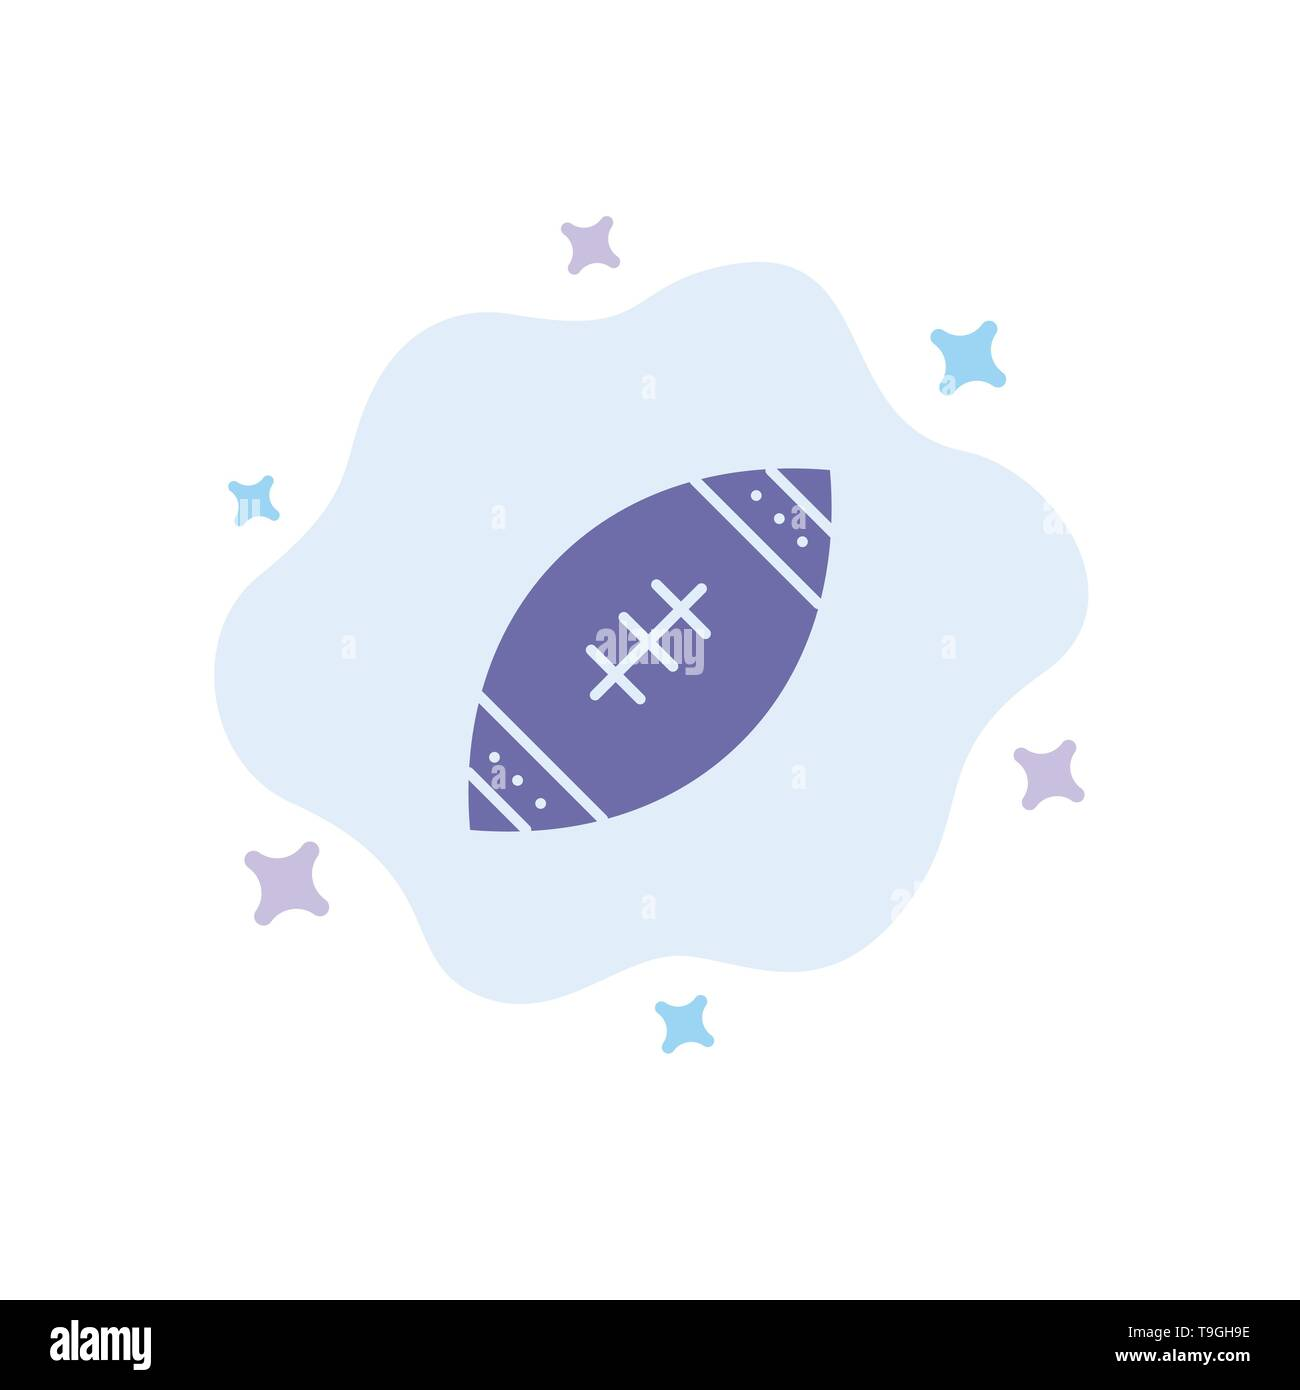 American, Ball, Football, Nfl, Rugby Blue Icon on Abstract Cloud Background - Stock Image